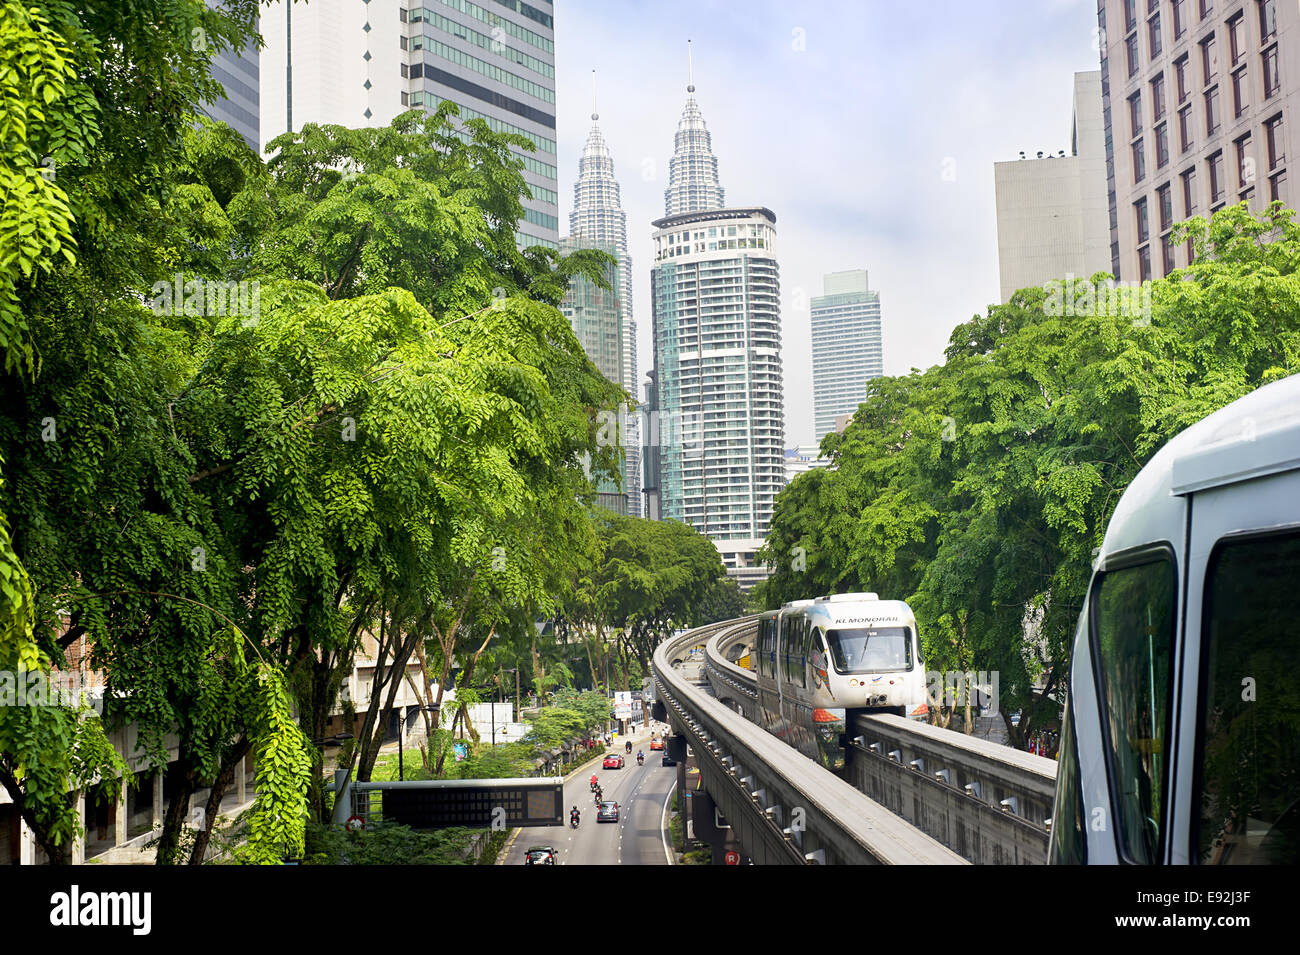 KL Monorail - Stock Image